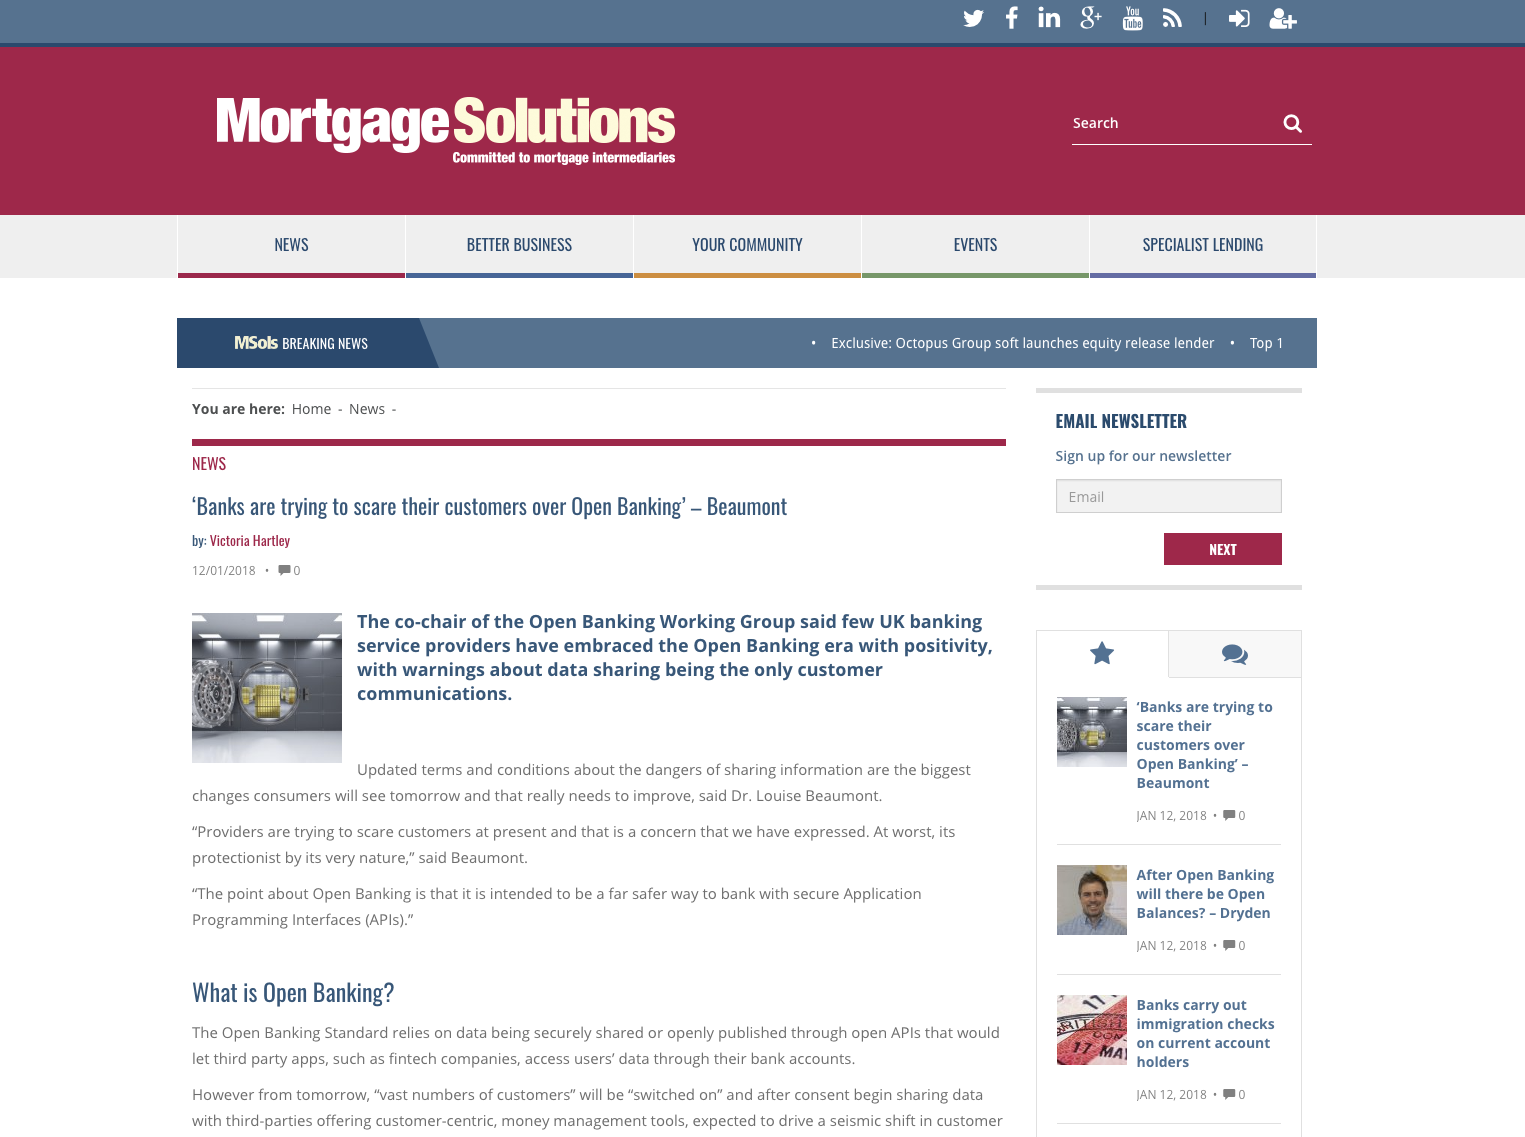 Mortgage Solutions article